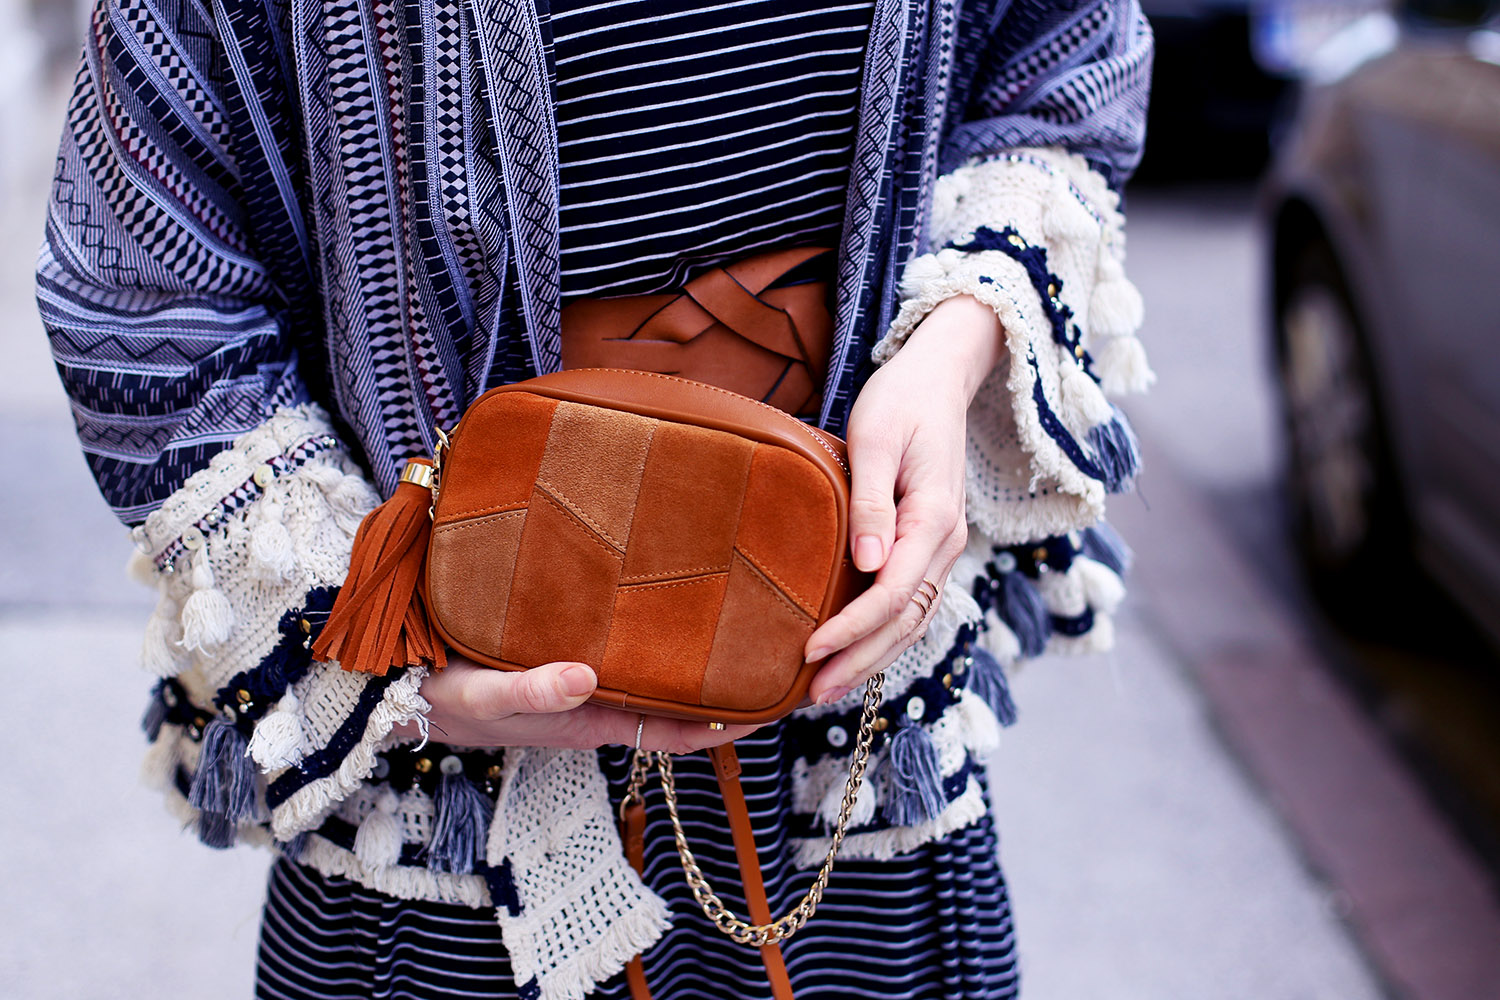 Sommer Trend, Tasche, Patchwork Tasche, Leder Tasche, Trendthema Bommel, Sommer, Streetstyle Innsbruck, Outfit, Trend, Modetipps, Finde deinen Stil, Influencer, Deutschland, Berlin, Mode Blog, Modeblog, Advance Your Style, advanceyourstyle